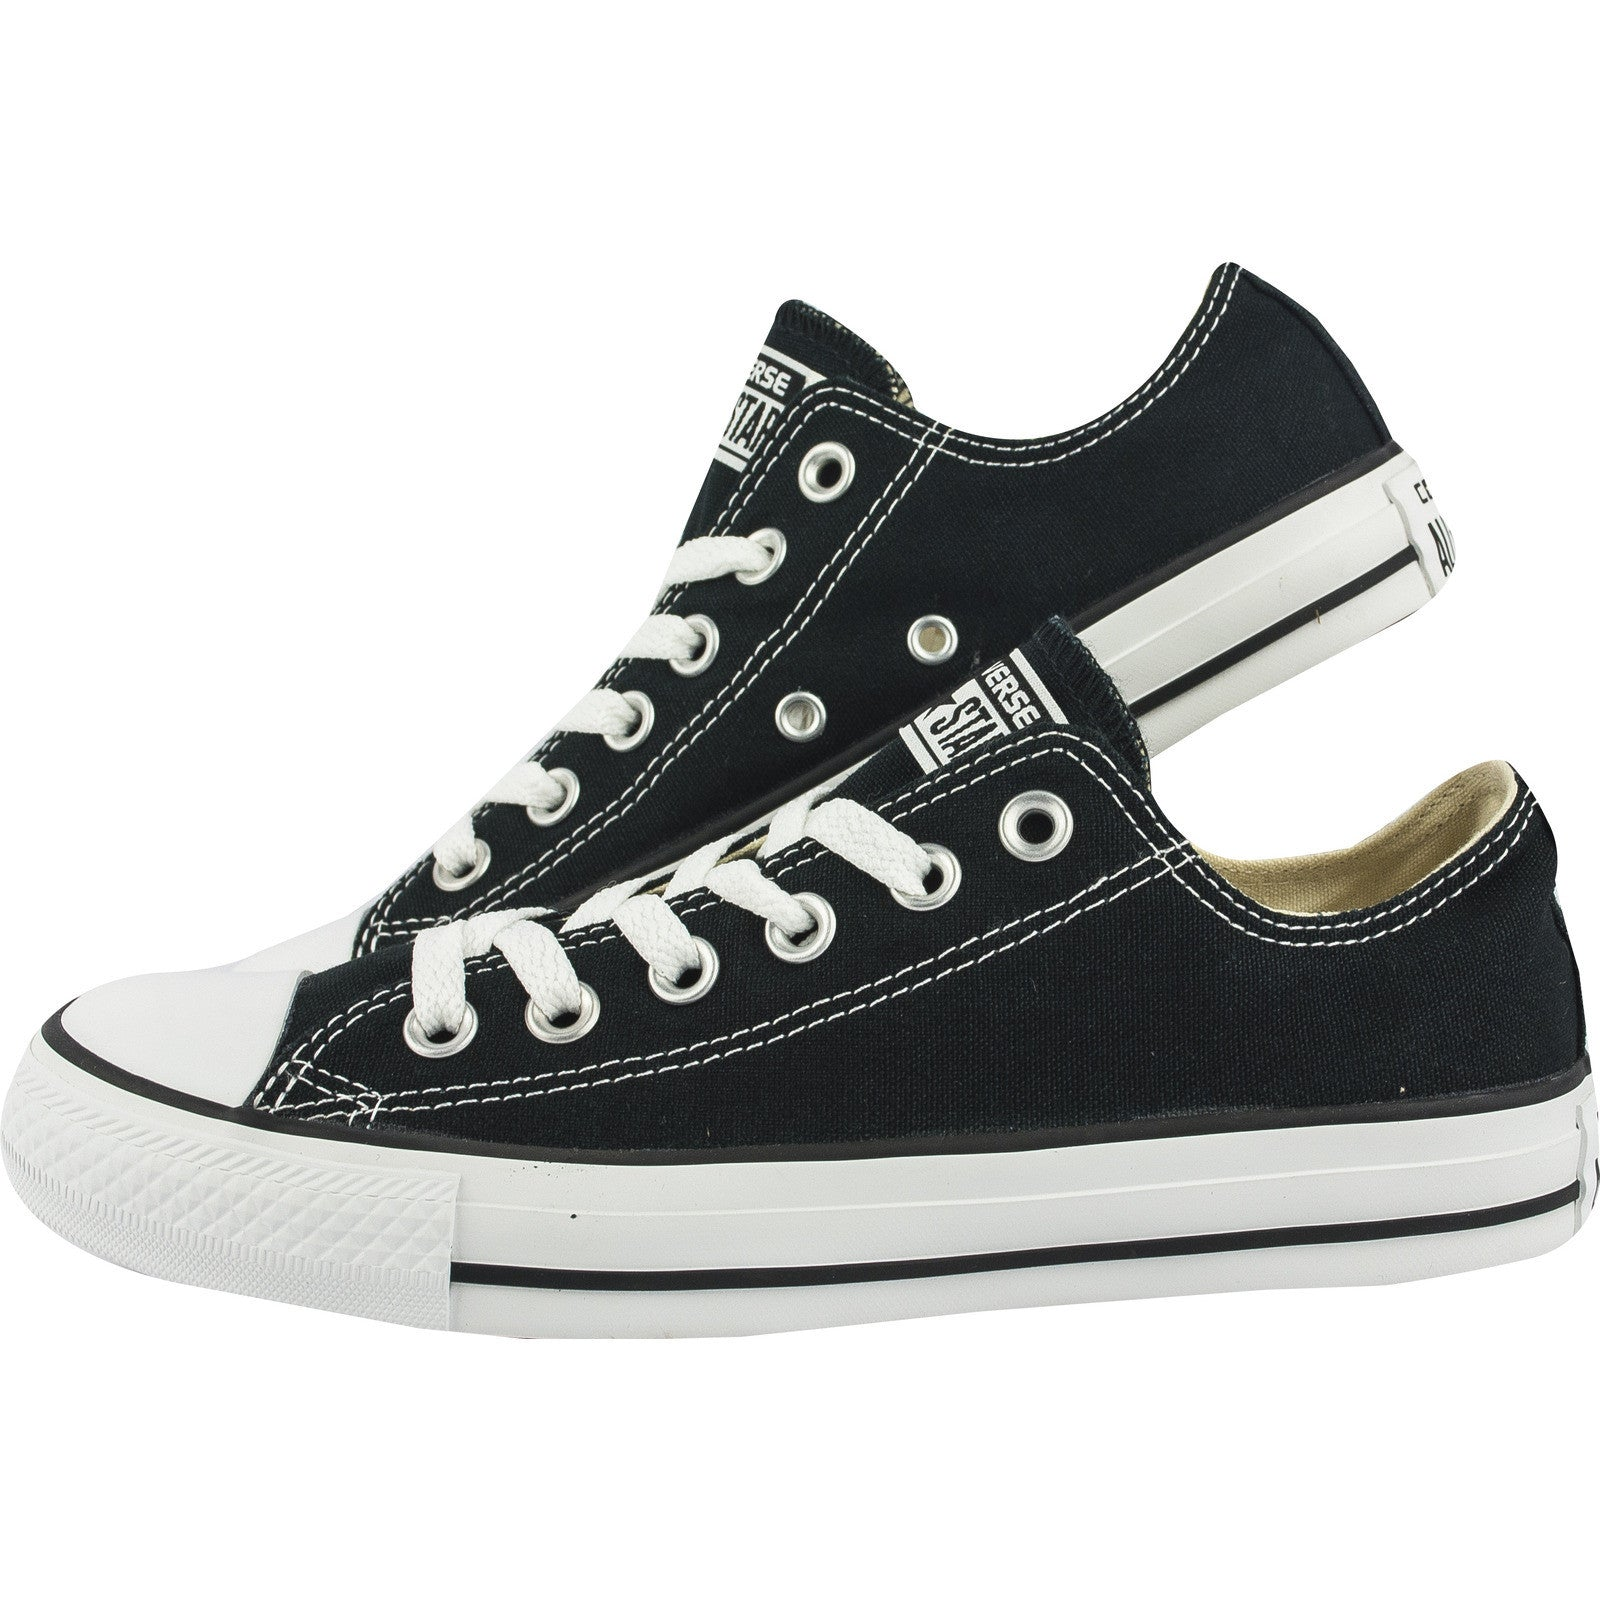 e8e07bfe0 Converse Classic Chuck Taylor All Star Black Low Tops M9166C Sneaker Men  Women ...